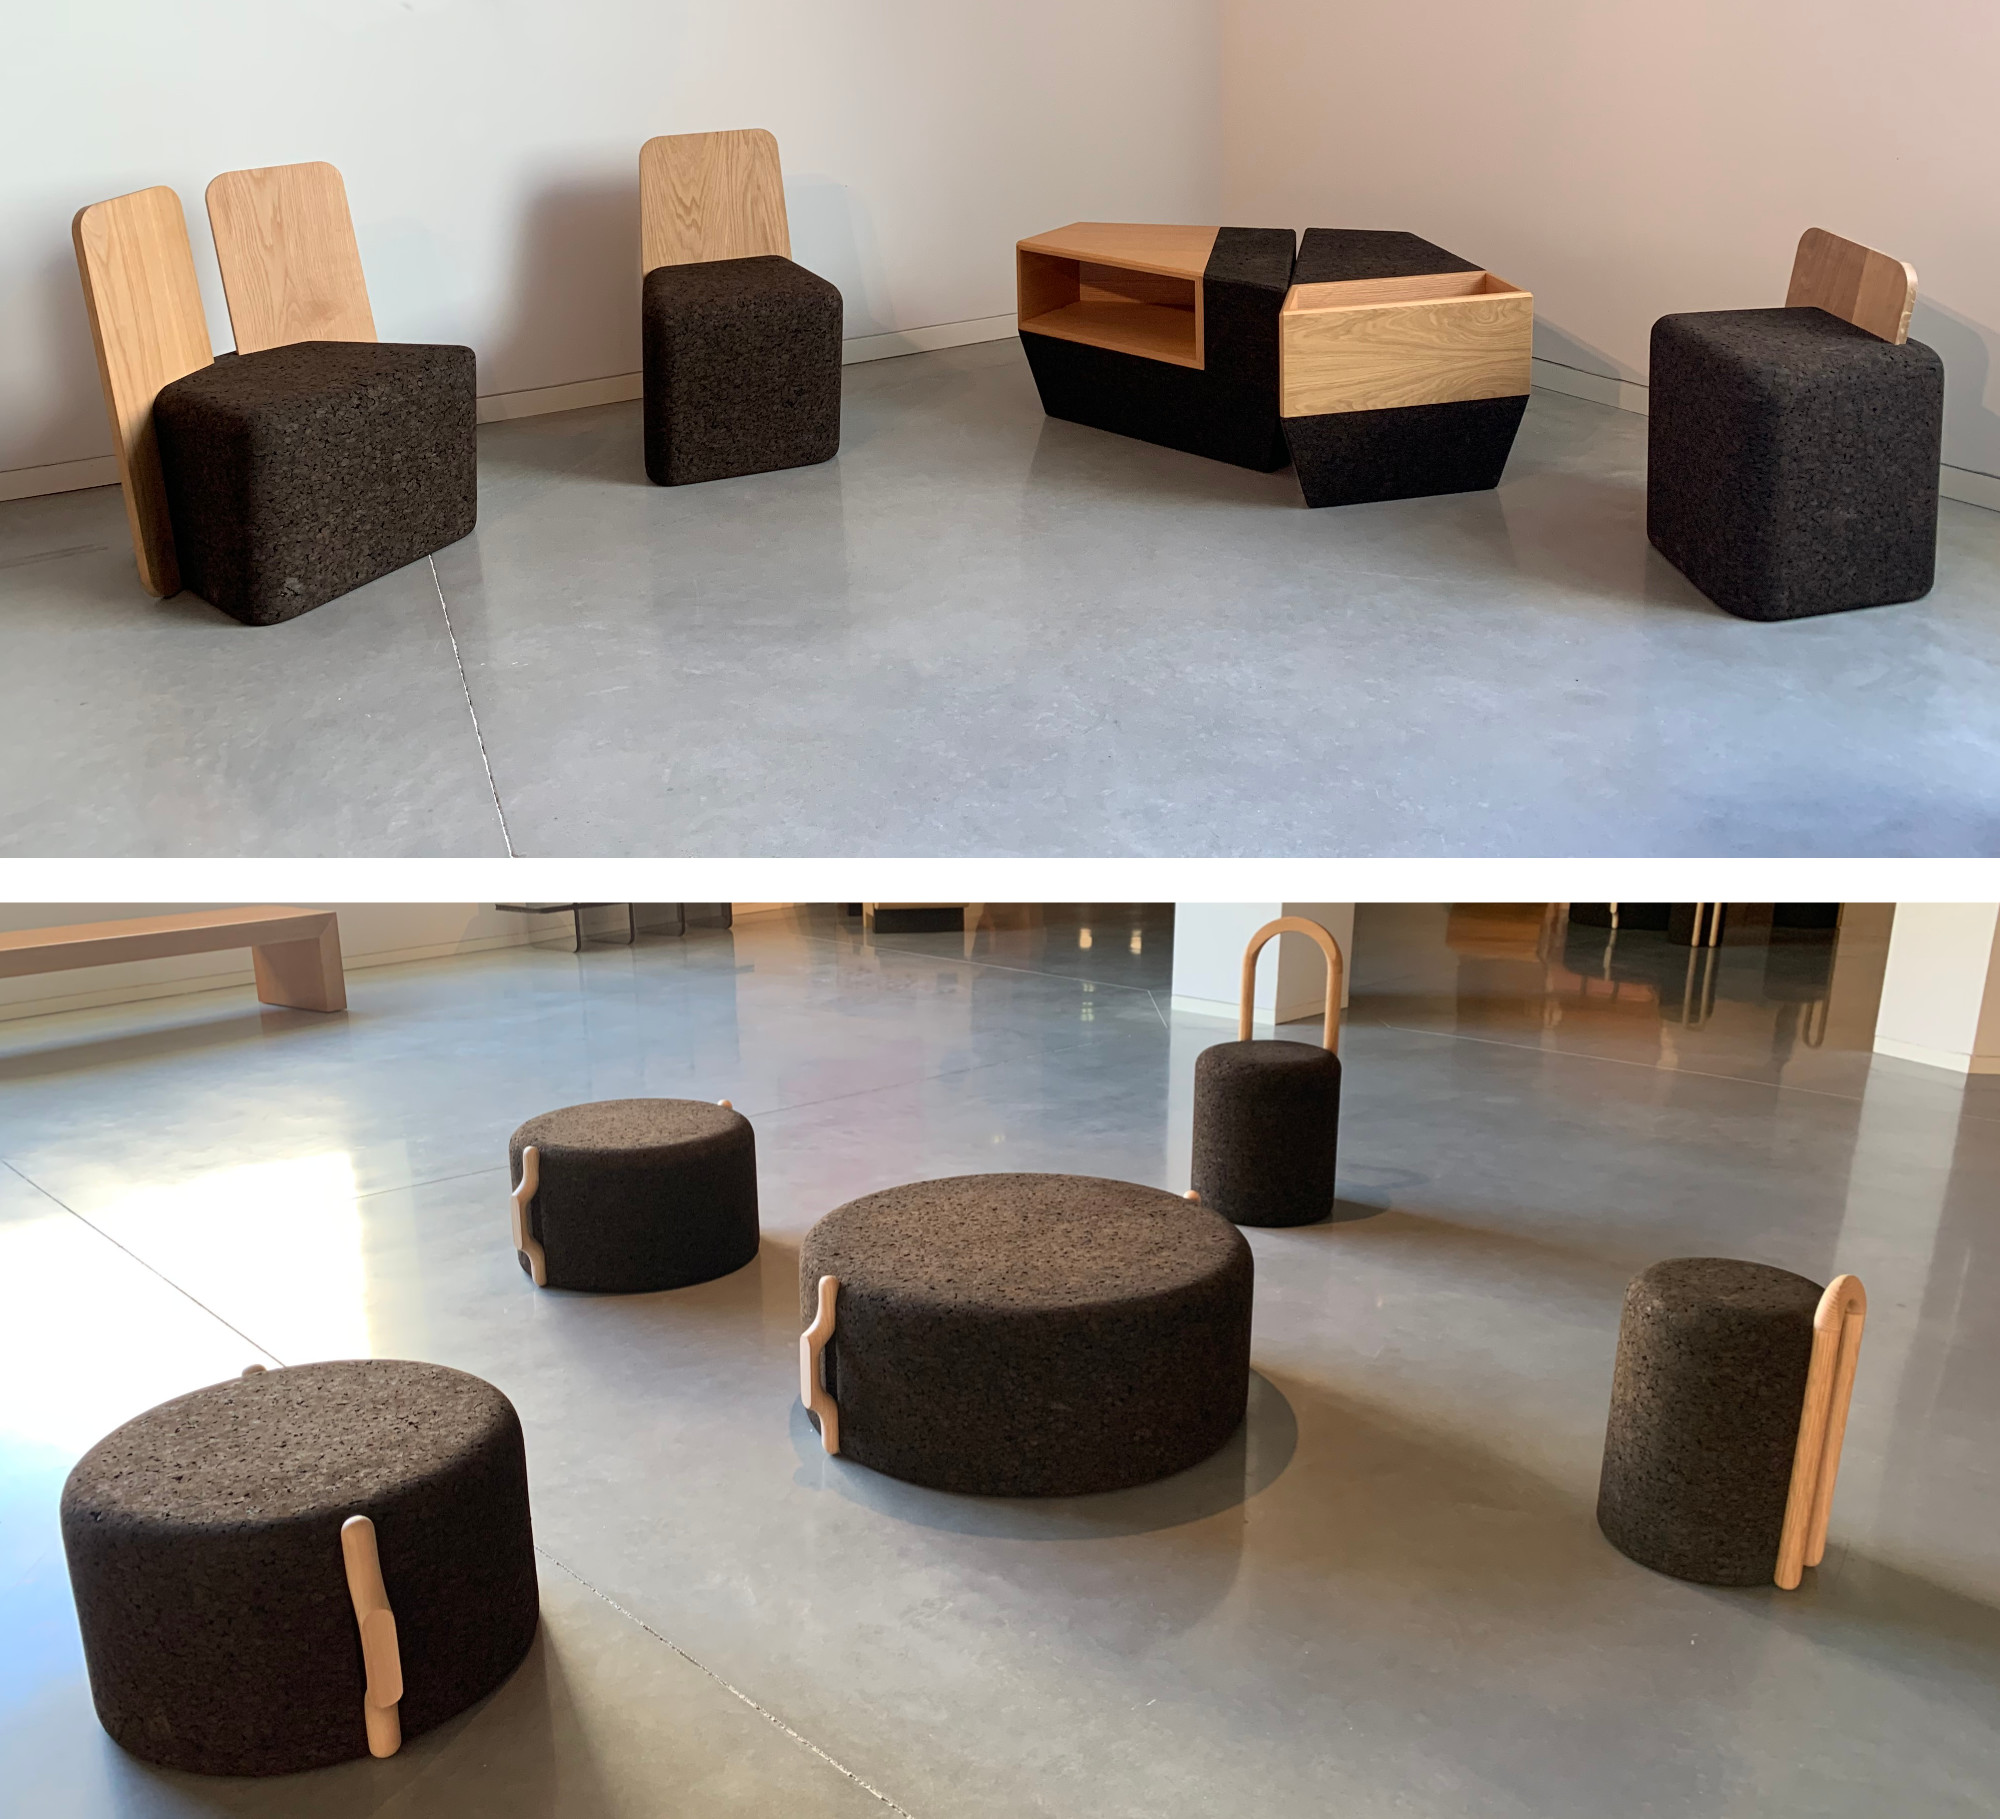 Futuristic cork furniture